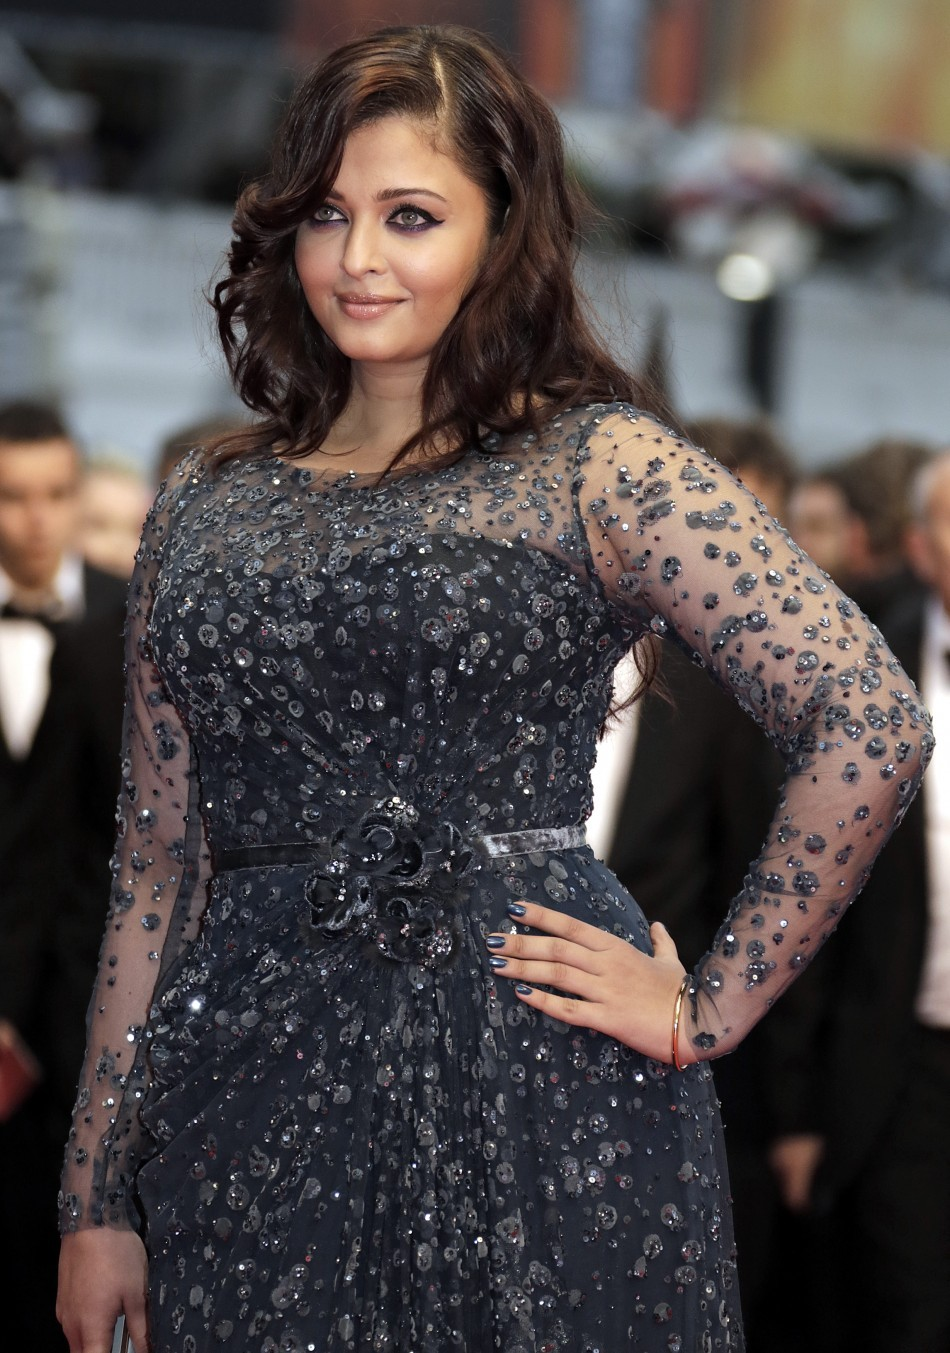 Aishwarya Rai Bachchan on Cannes 2013 Red Carpet: Will She Make up for